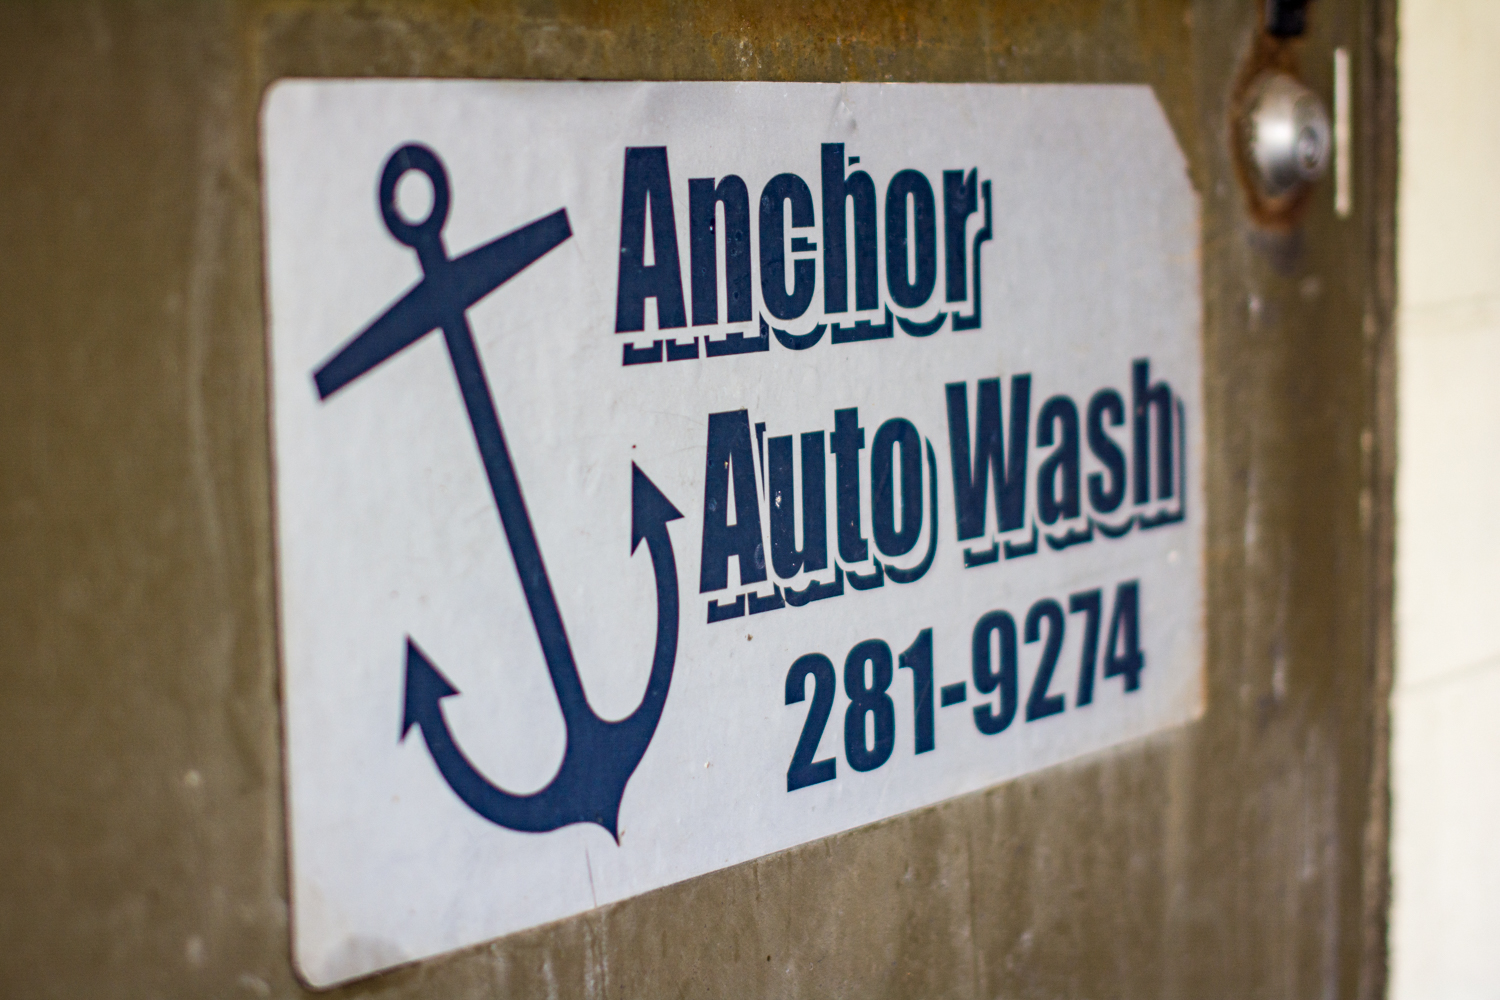 Anchor Auto Wash Grand Rapids Michigan logo